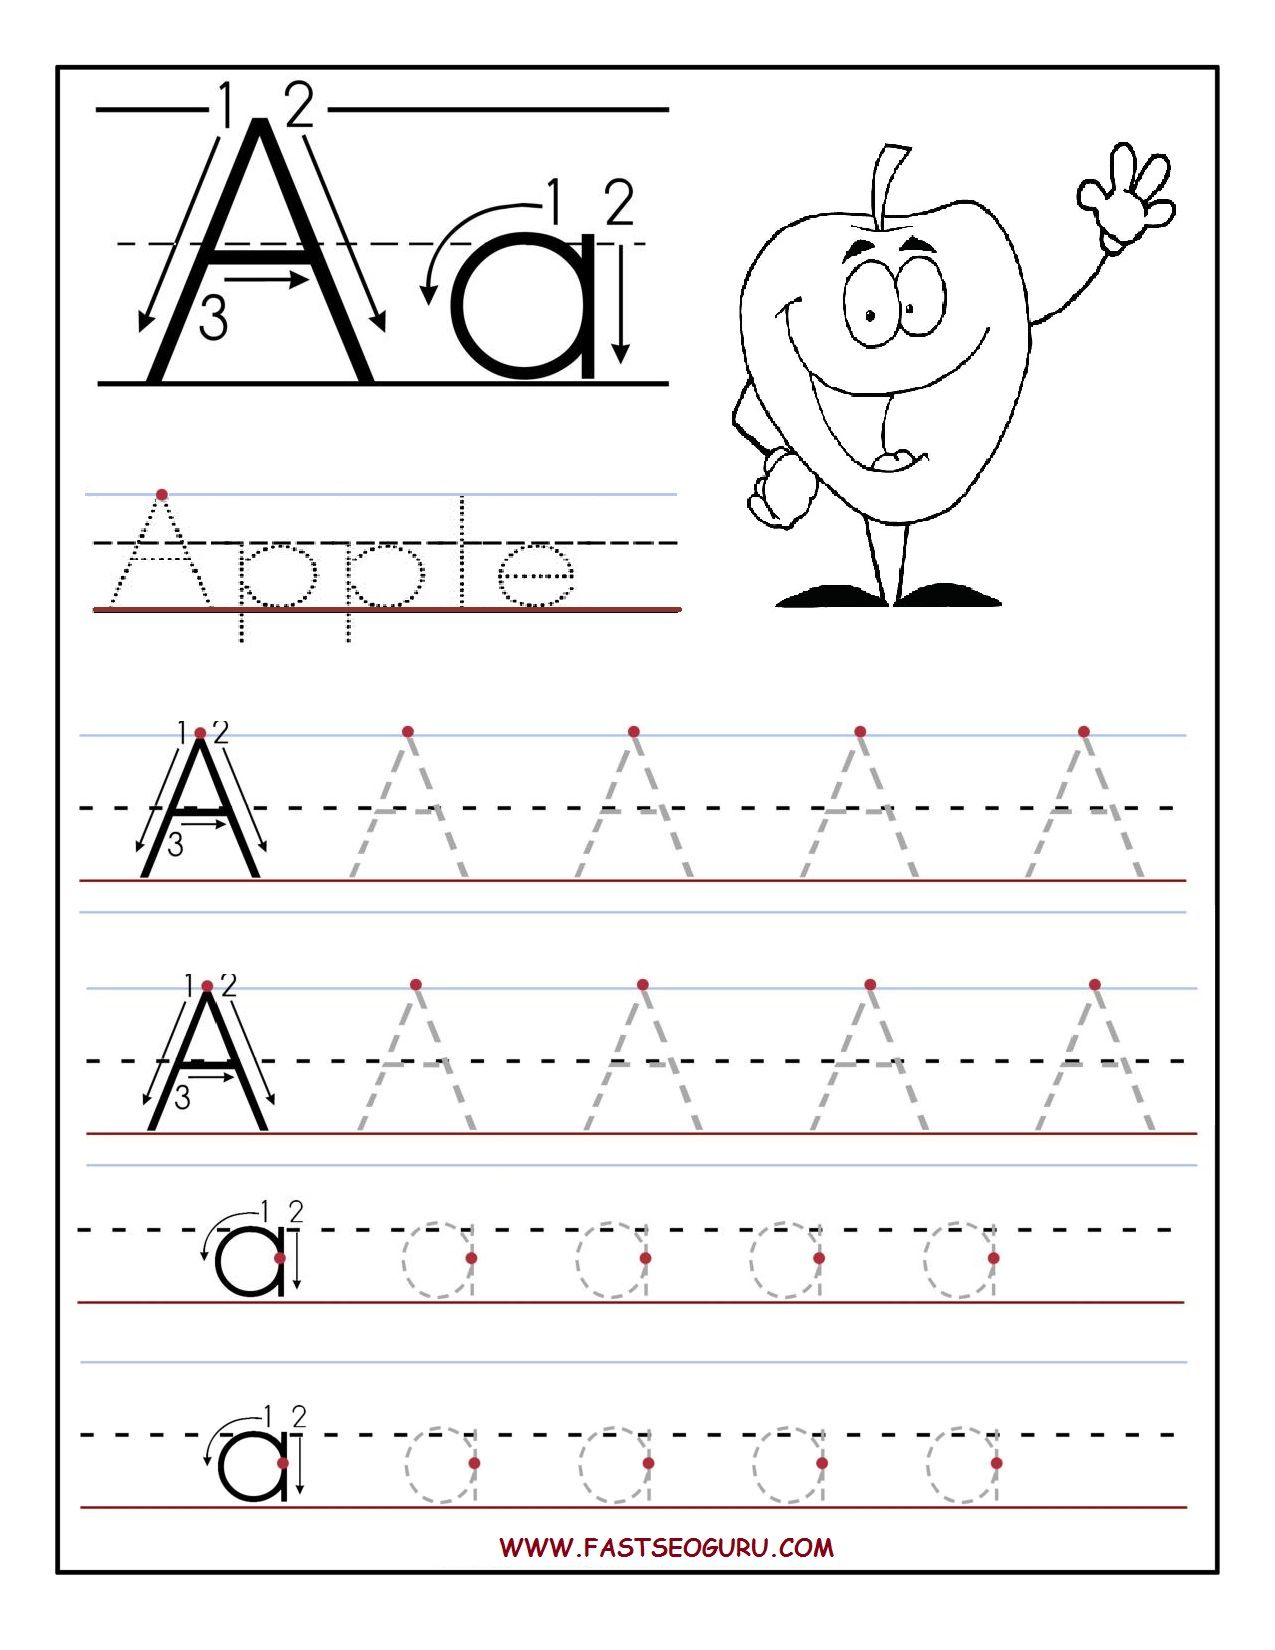 Worksheets Pre K Alphabet Tracing Worksheets bfree printable letter a tracing worksheets